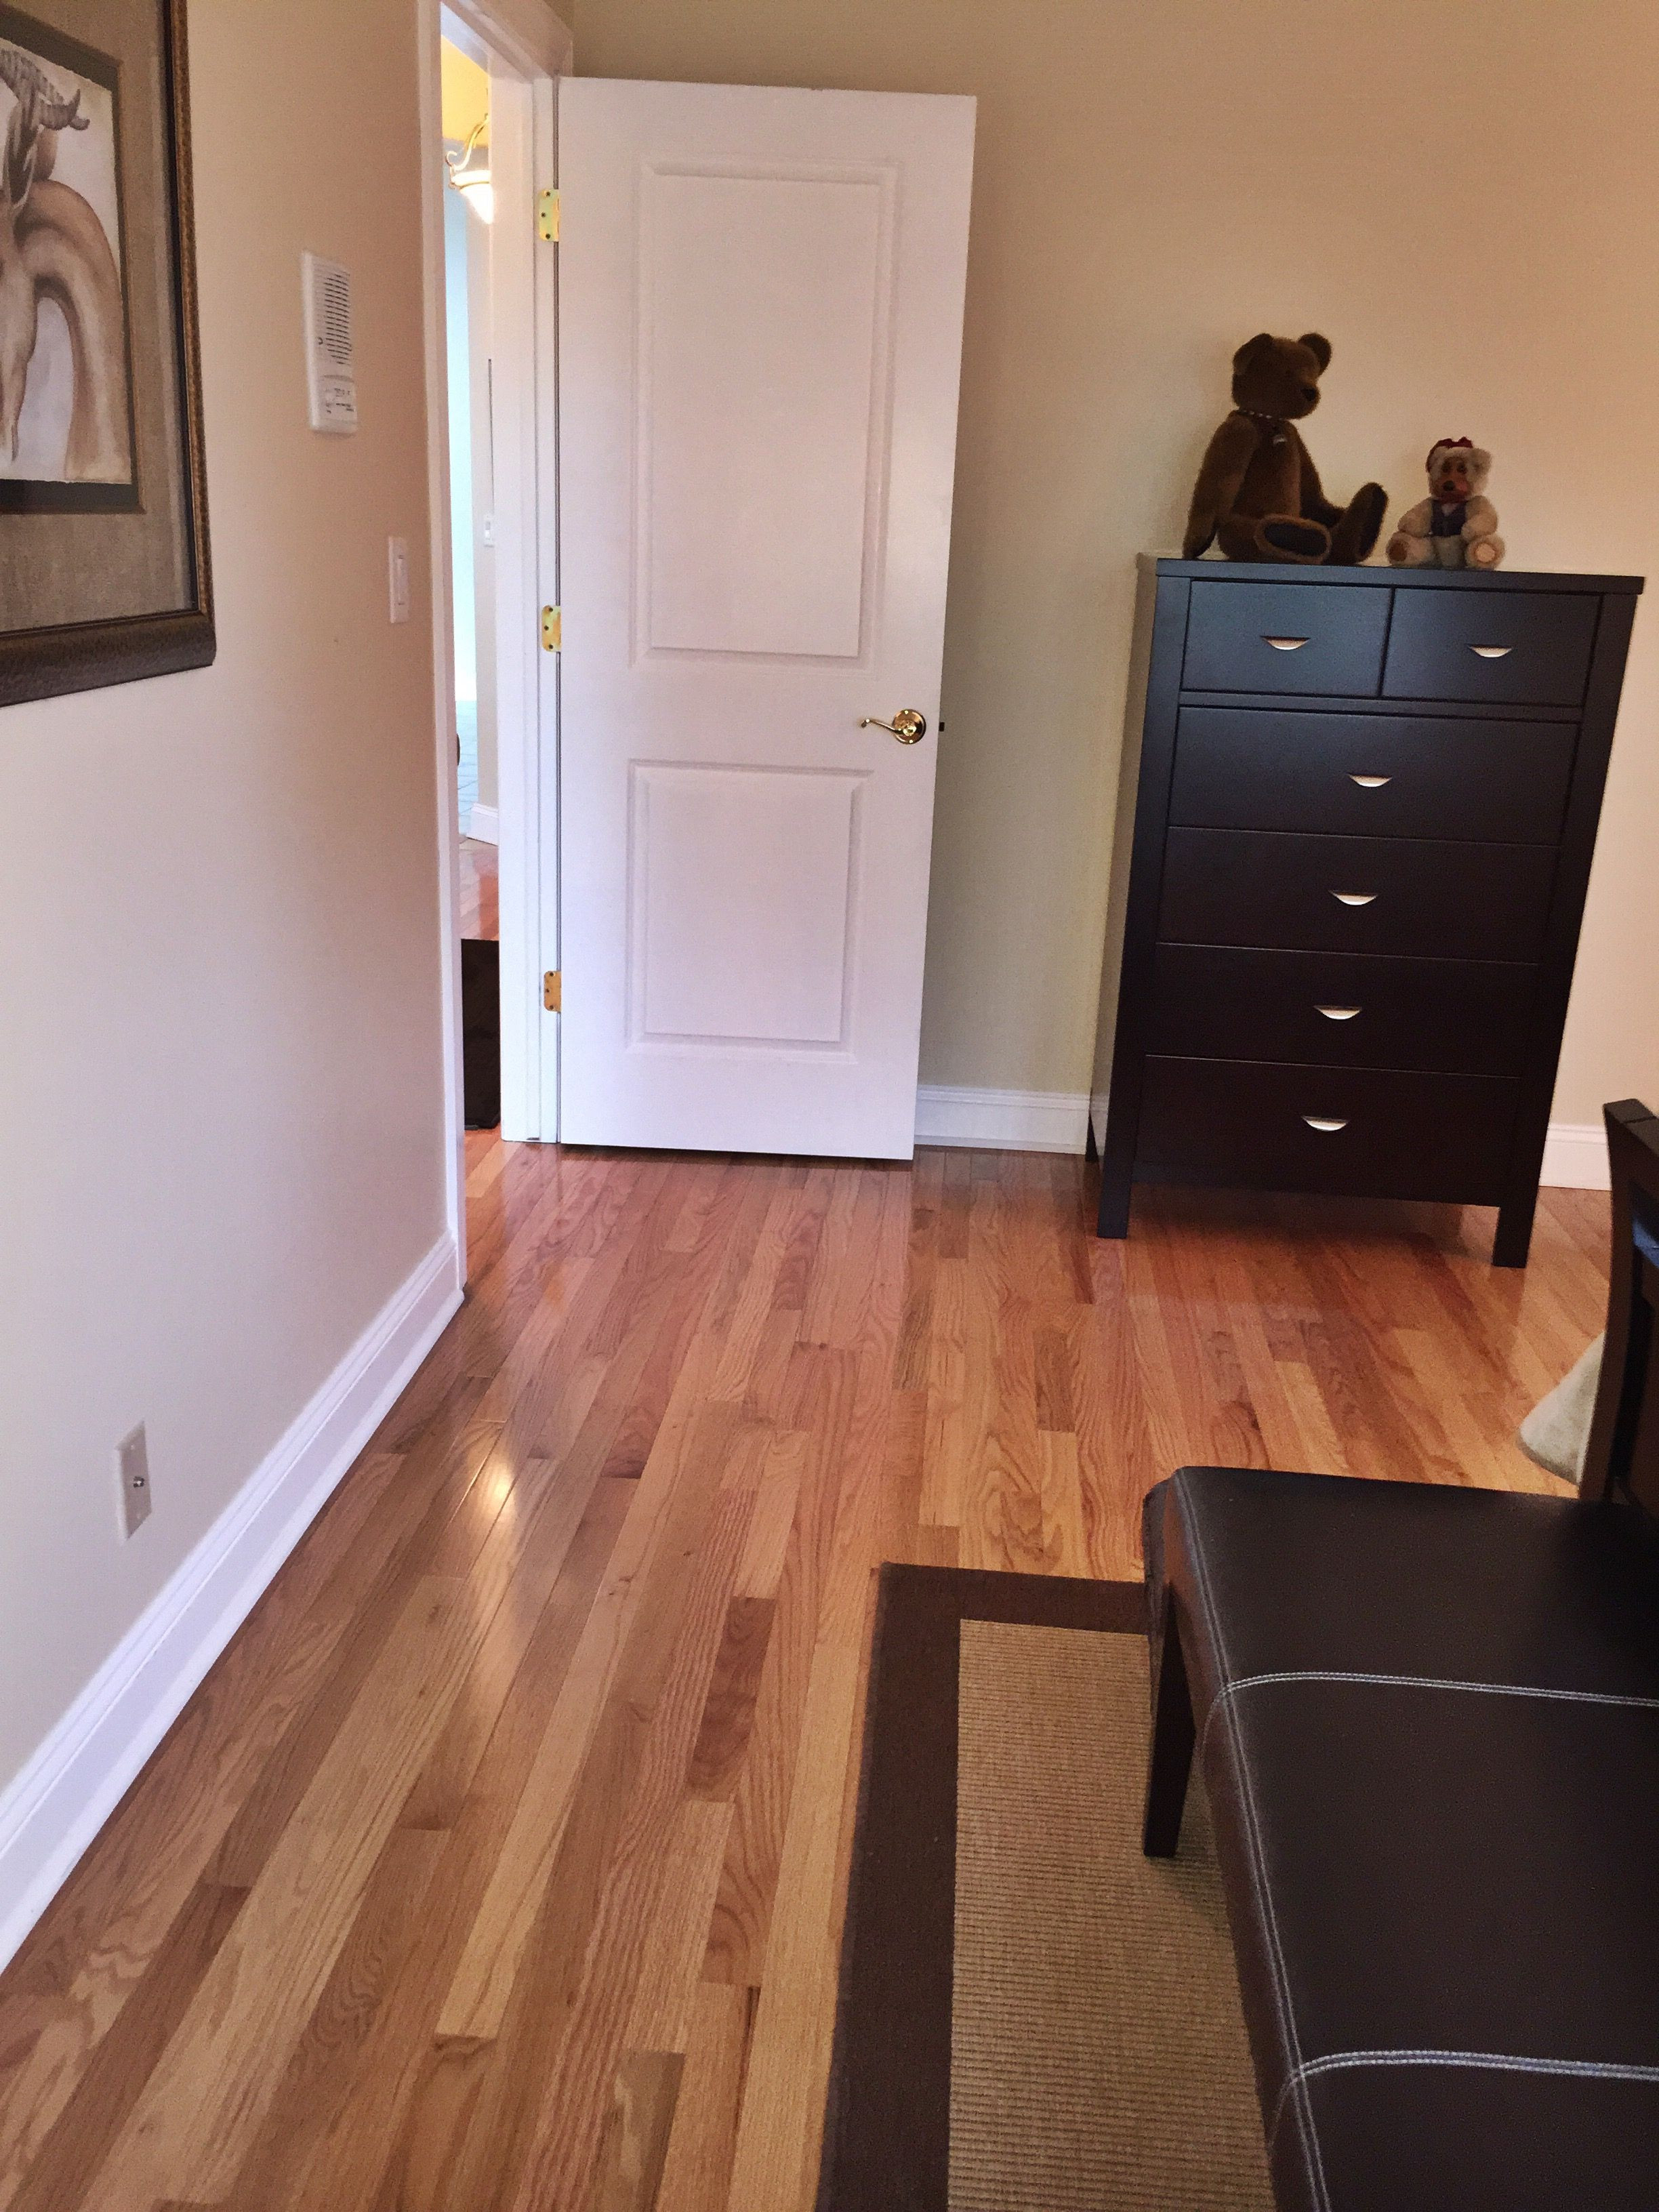 hardwood flooring chicago area of hardwood floor refinishing chicago hardwood flooring somerset high with hardwood floor refinishing chicago hardwood flooring somerset high gloss 2 1 4 width natural red